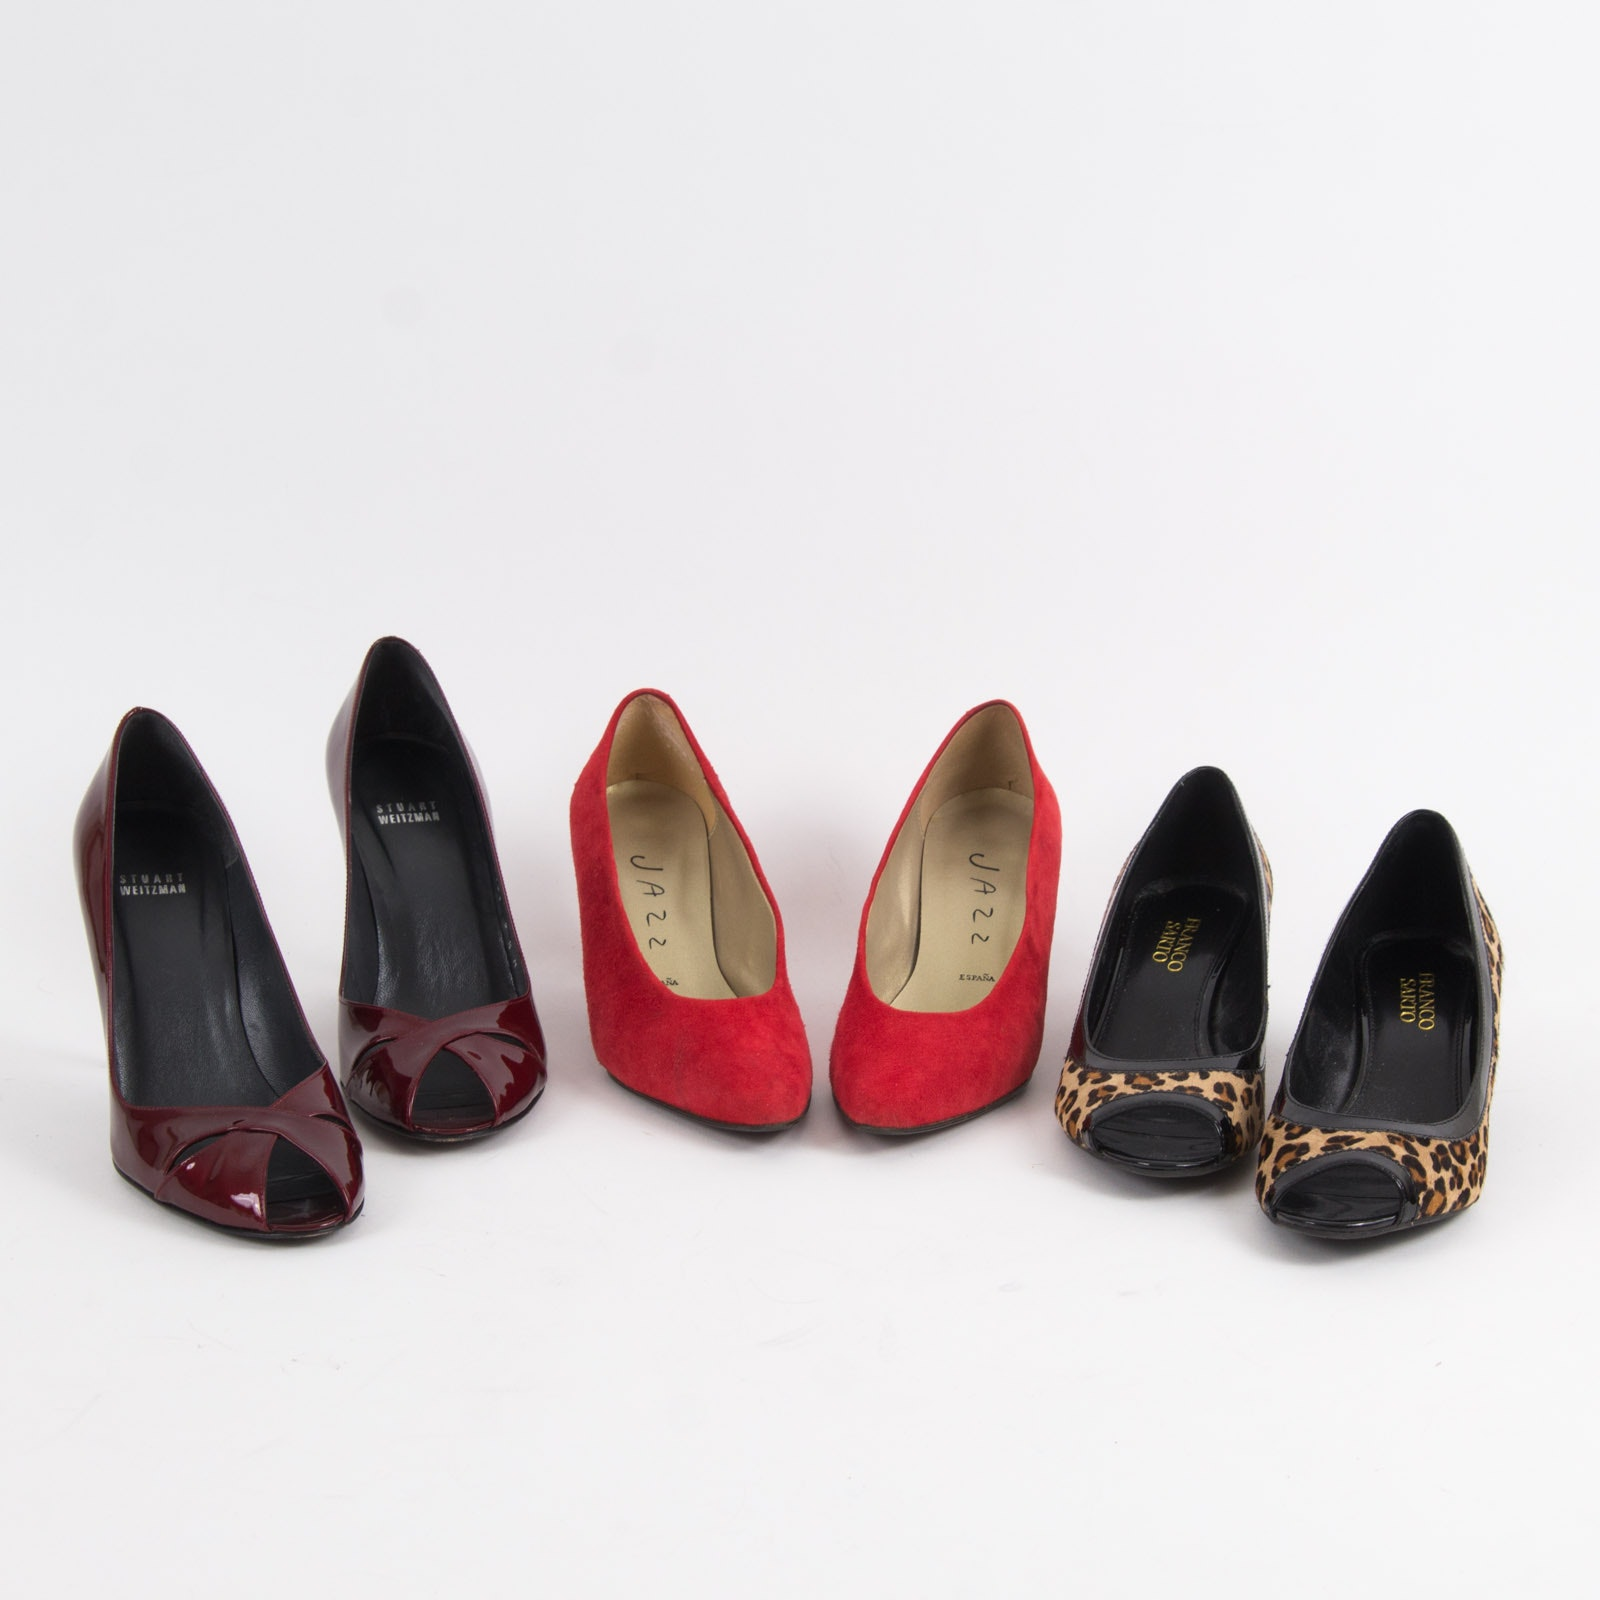 Three Pairs of Women's High Heels